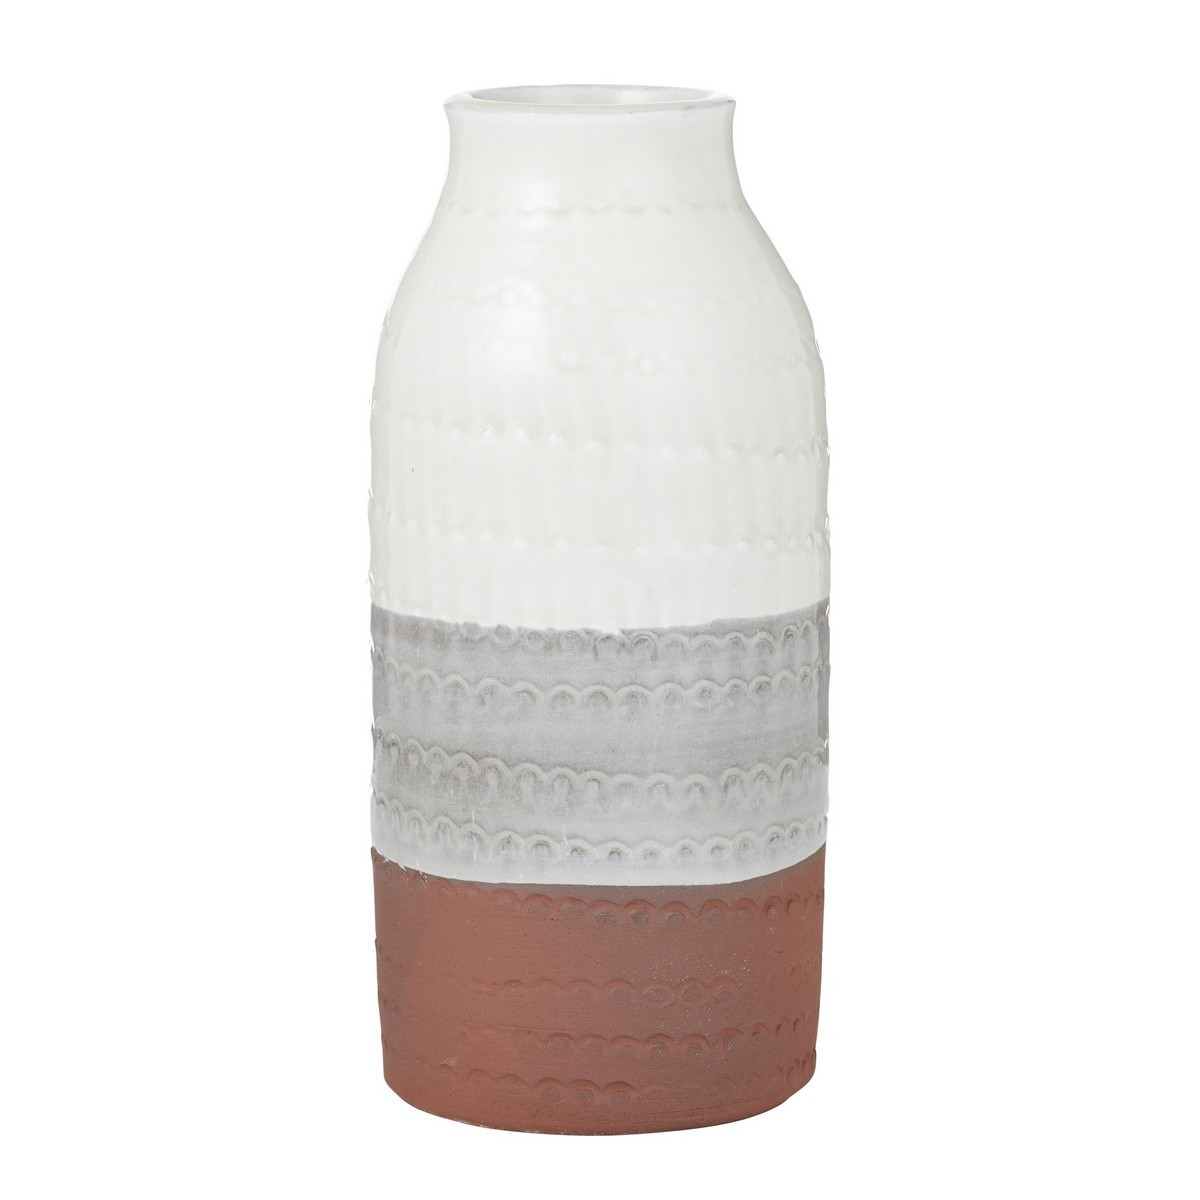 Zaire Terracotta Vase, Small